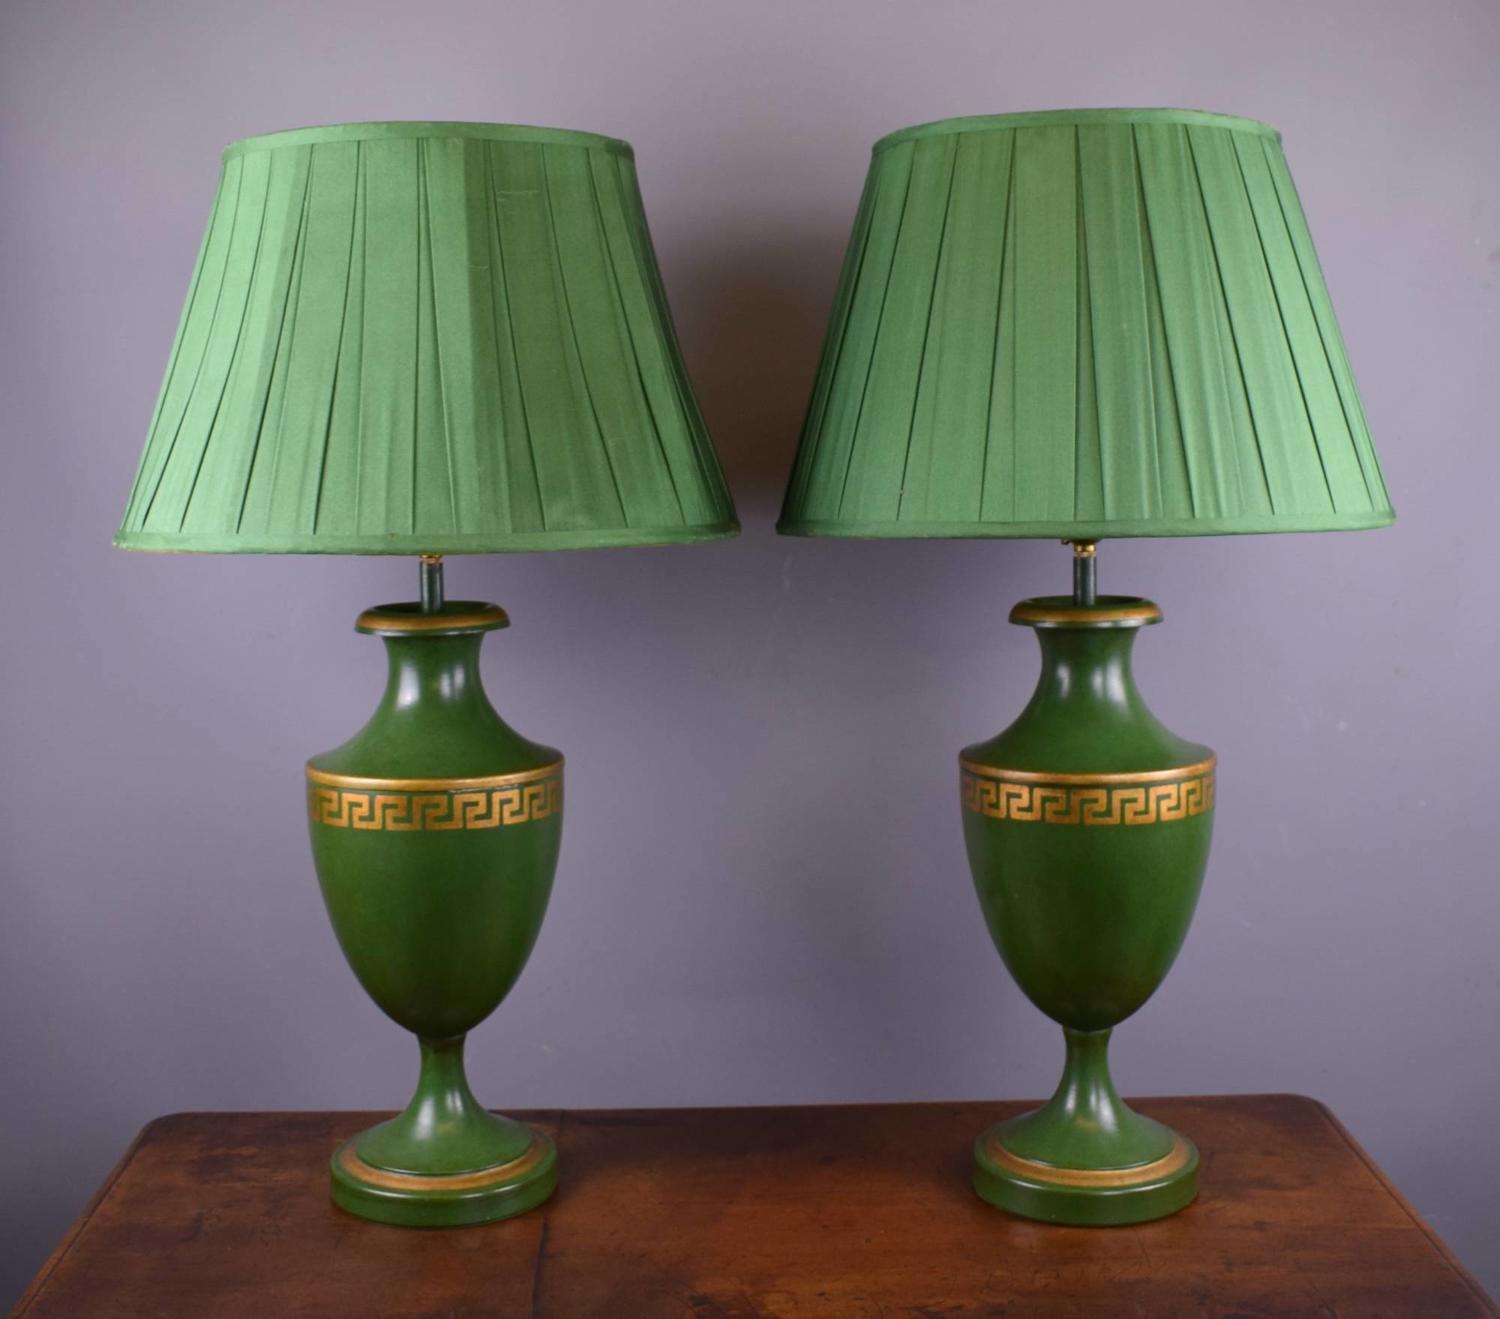 Pair of Green Toleware Table Lamps